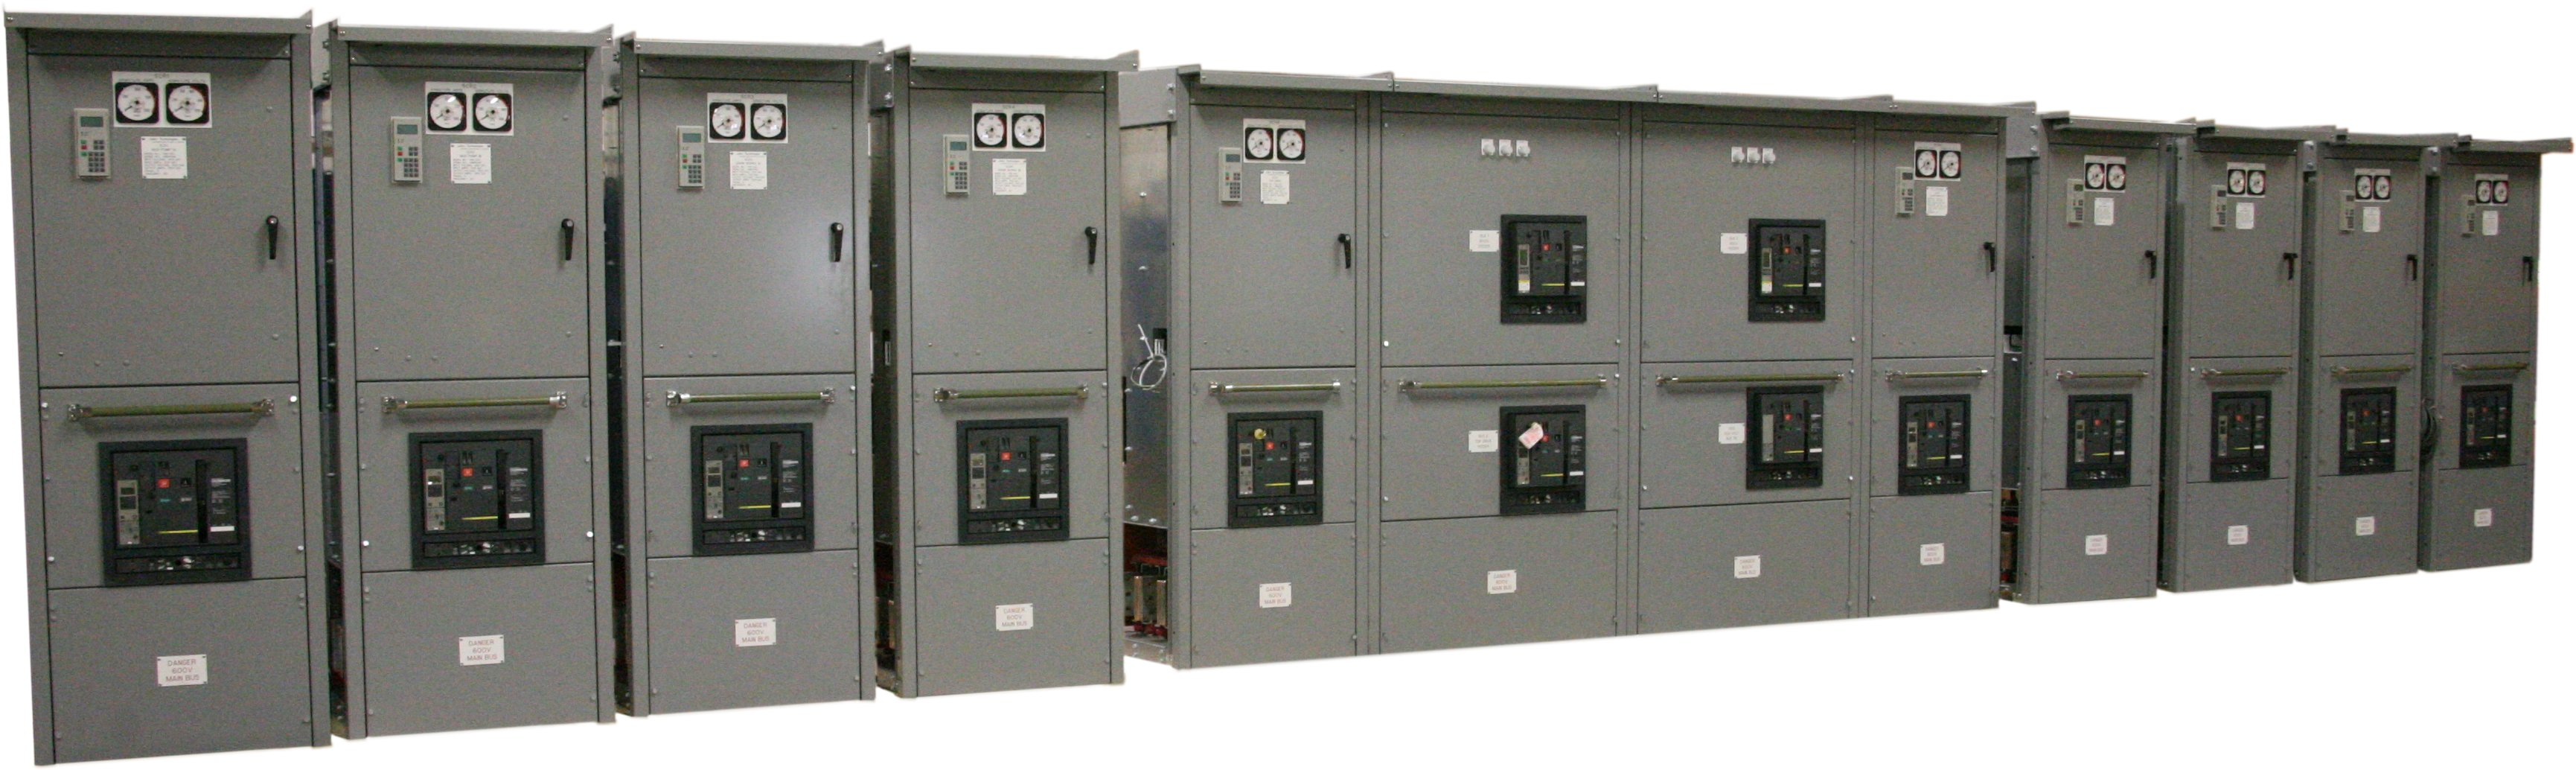 Joliet Technologies Engineers And Manufactures 10 DC Variable Speed Drives,  2 Feeder Cabinets U0026 2